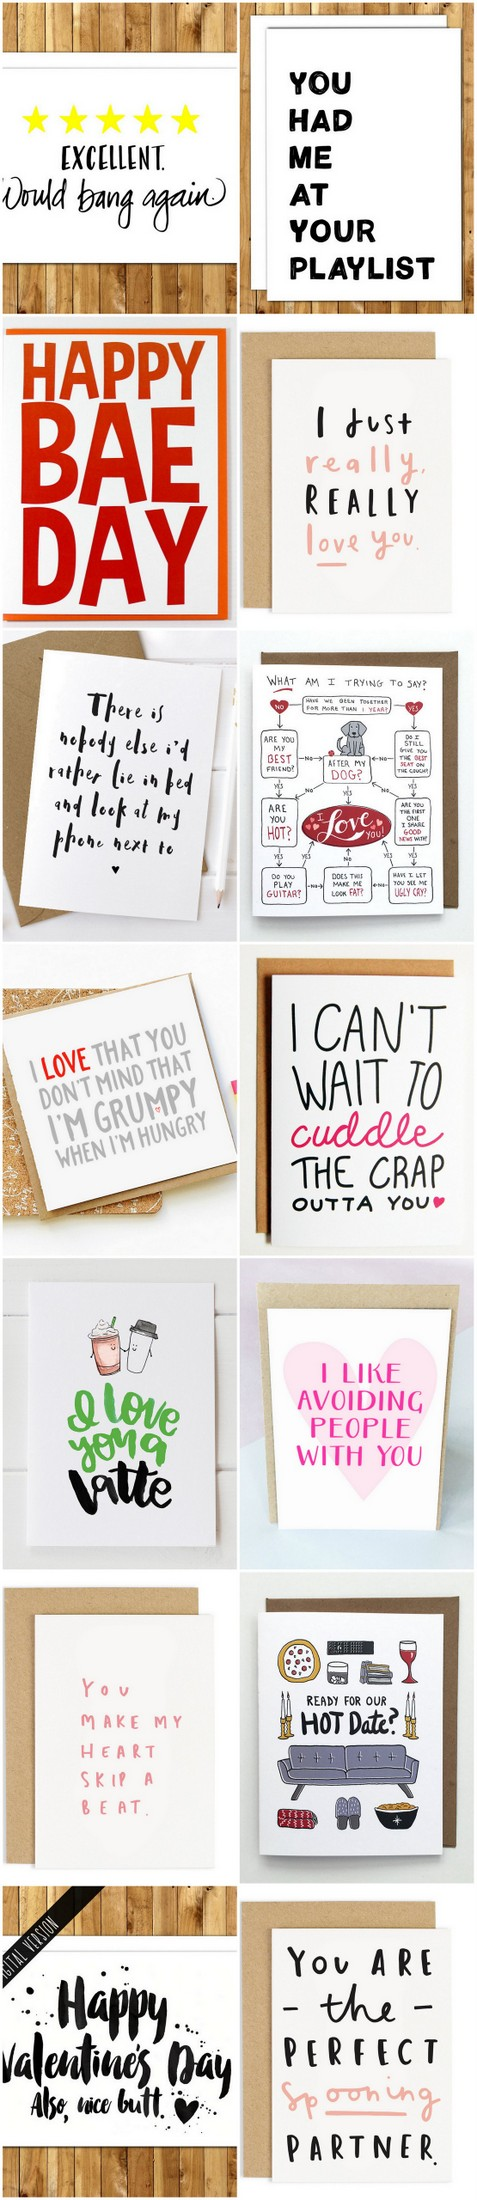 Totally Naughty Funny Valentines Cards For Him Or Her - 8 funny valentines cards for single people